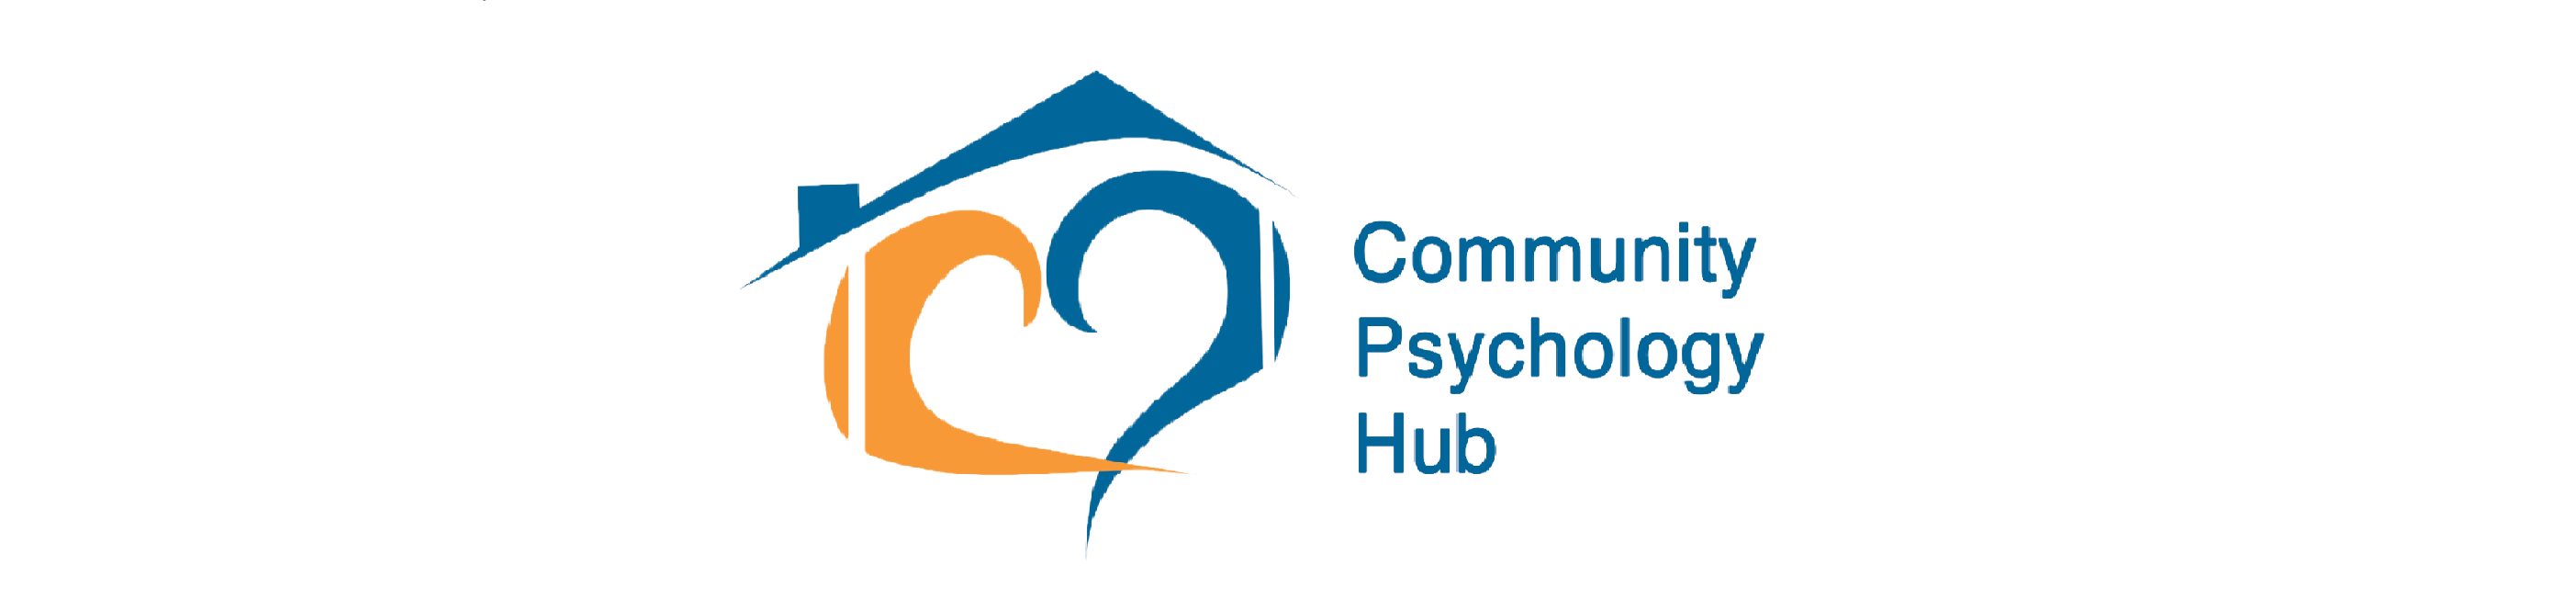 CPH is hiring for various Psychological & Technical Services' positions!